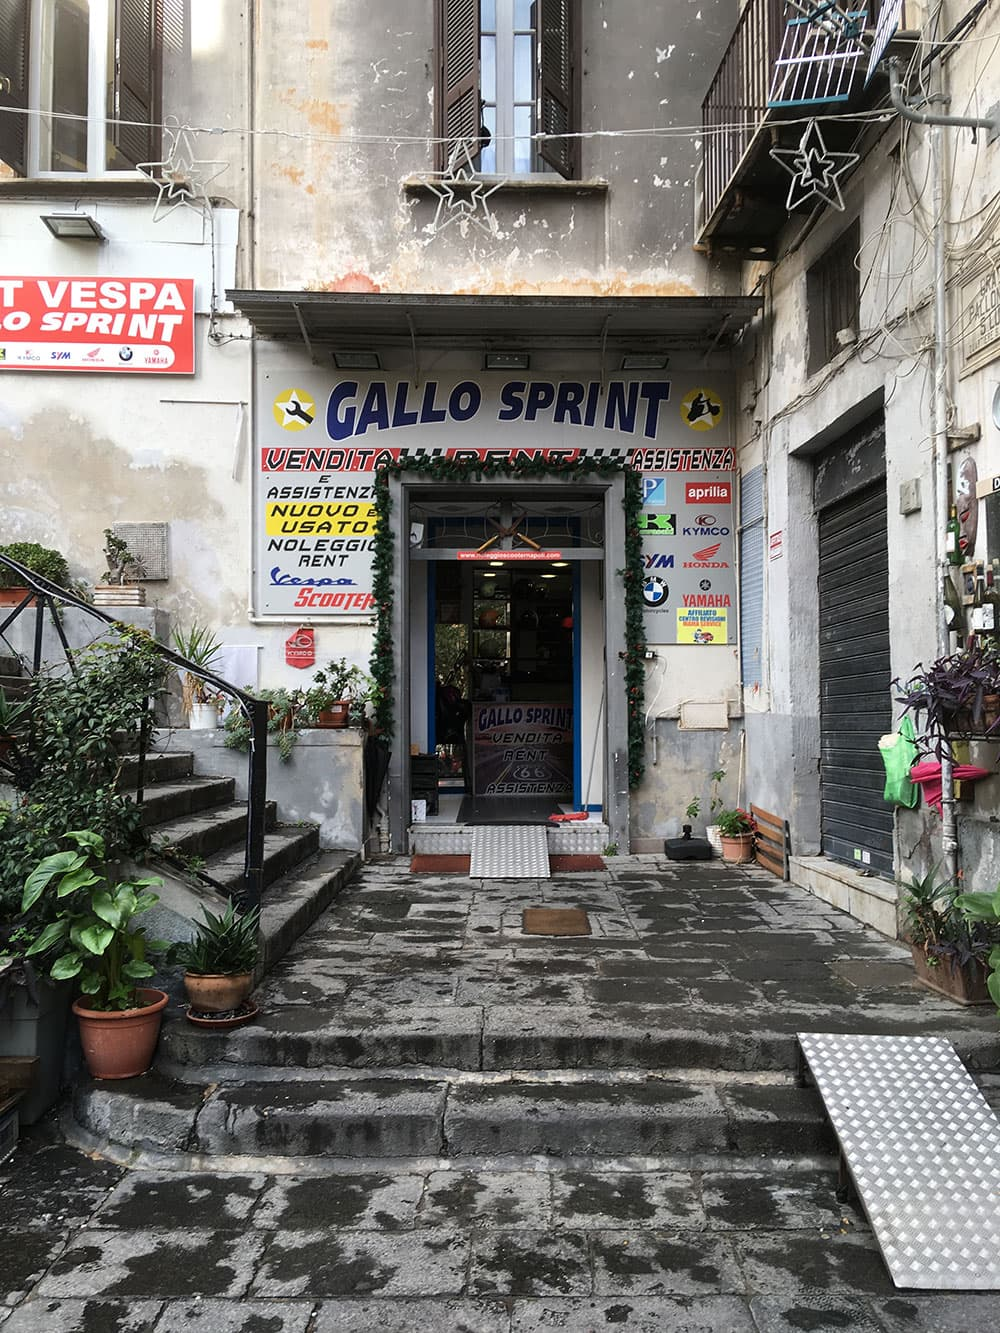 Gallo Sprint scooter hire front entrance in Naples